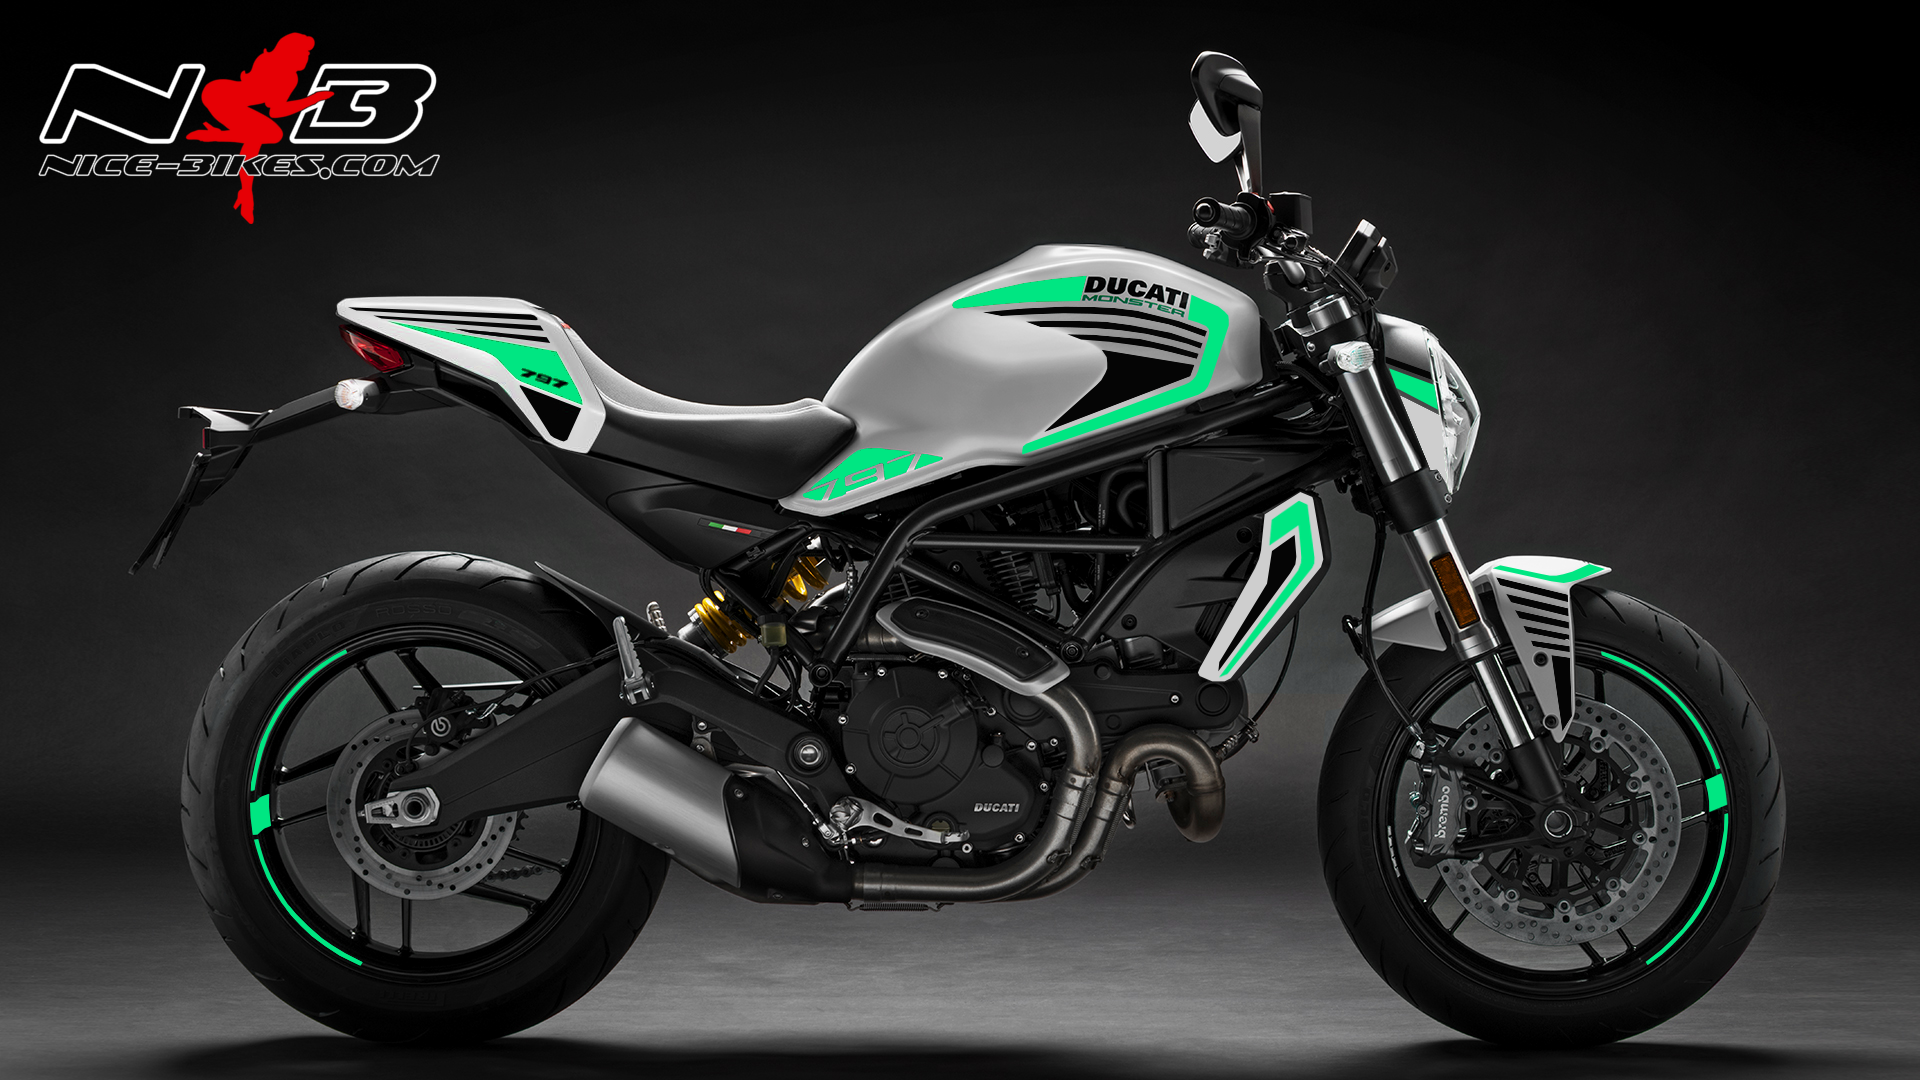 Foliendesign DUCATI  Monster 797 Bj. 2020 Mint Blue